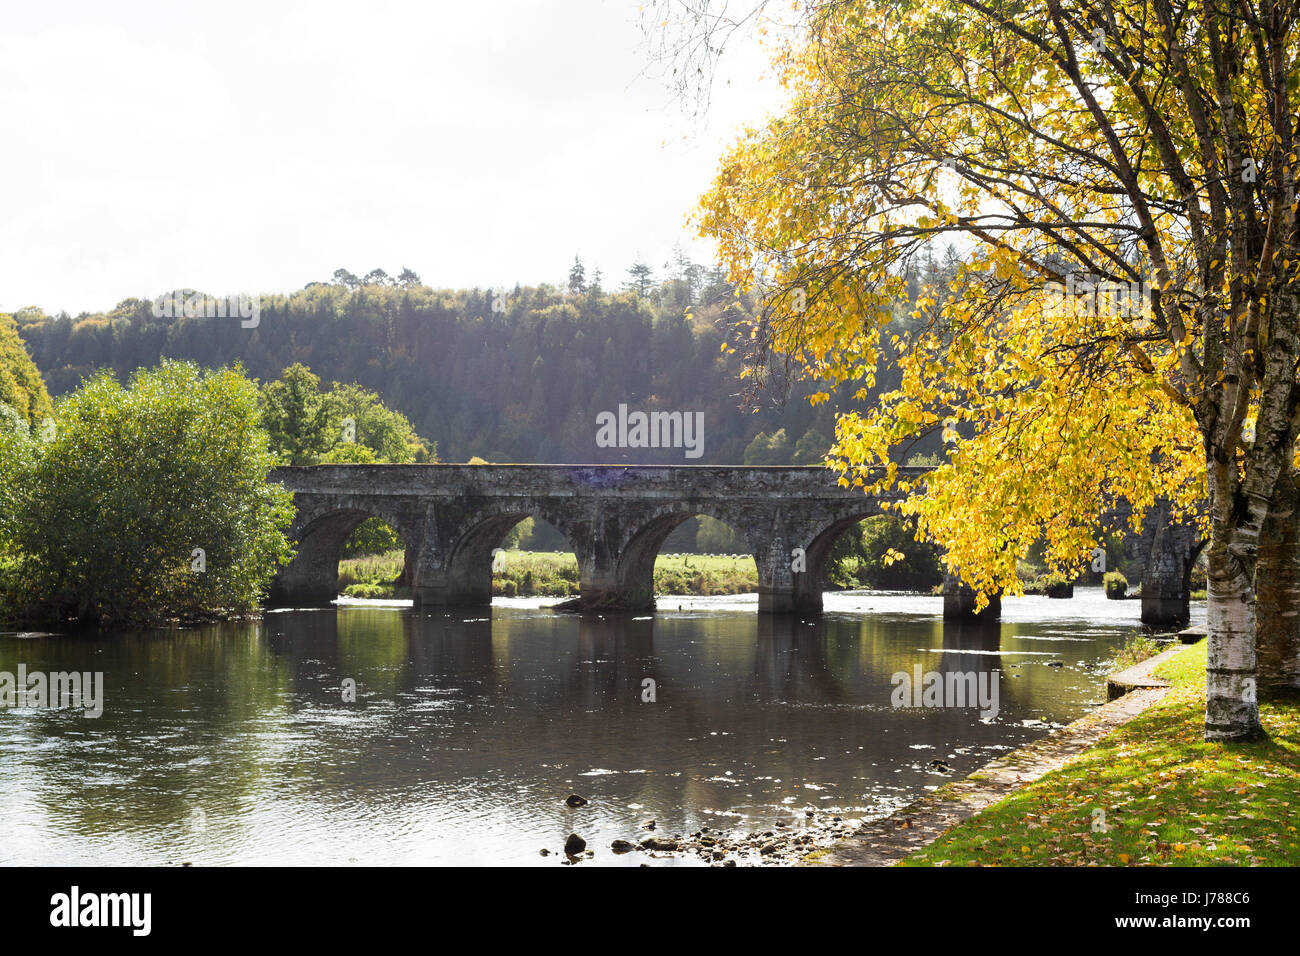 The historic and beautiful Ten Arch stone Bridge over River Nore in Inistioge, Kilkenny, Ireland - Stock Image